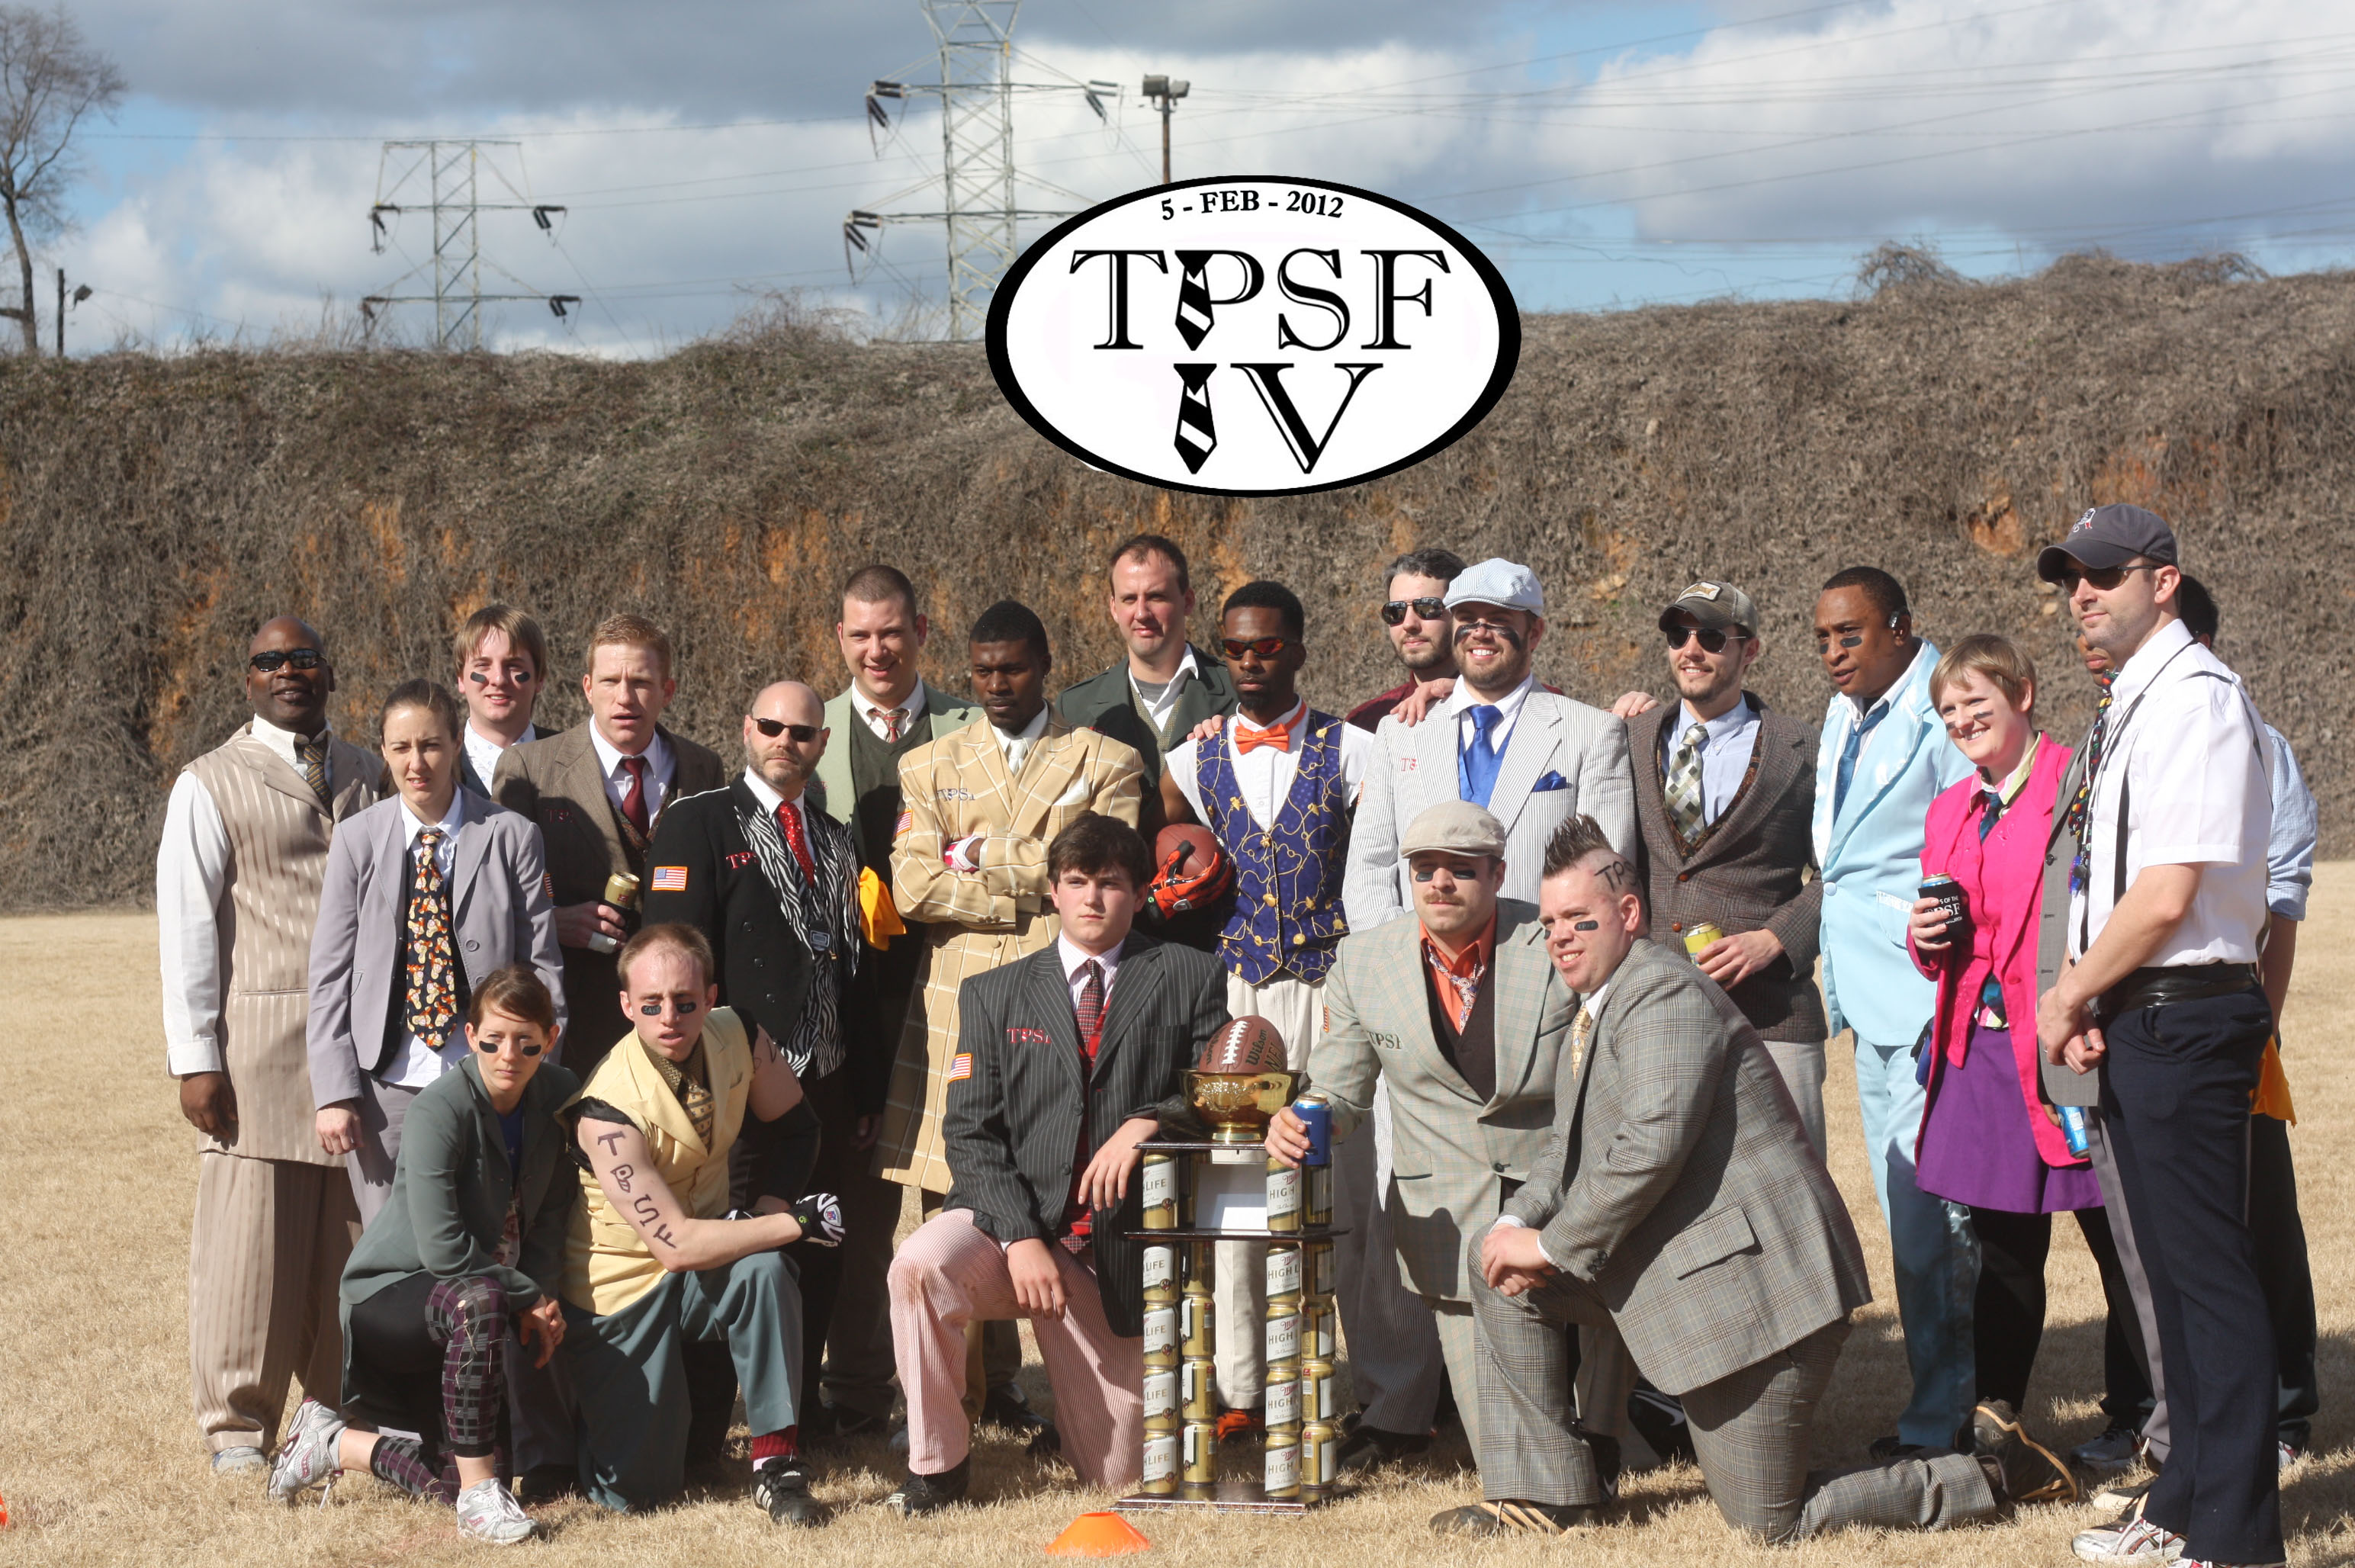 TPSF IV Group pic